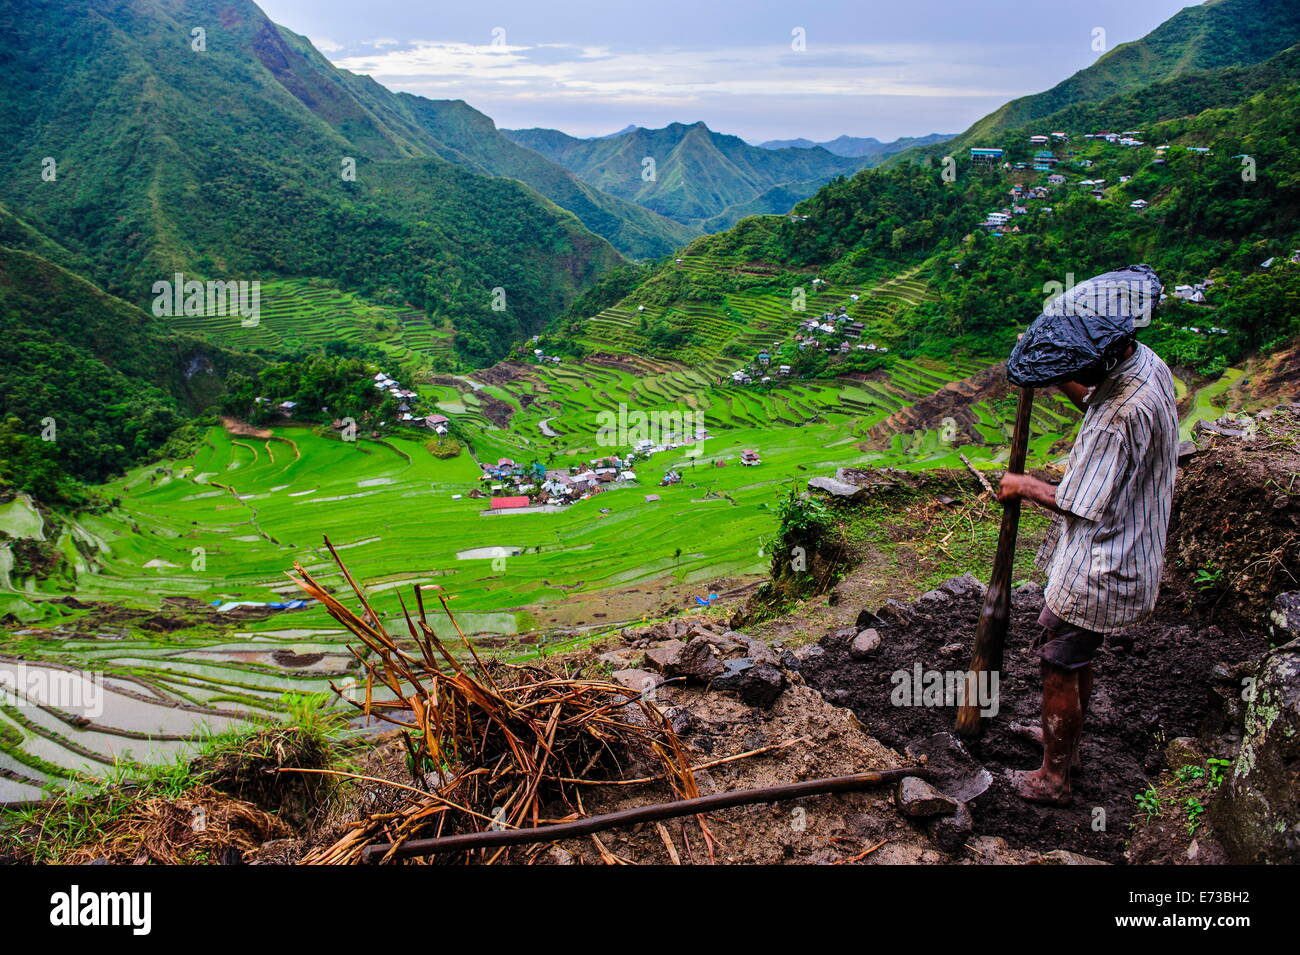 Man working in the Batad rice terraces, part of the UNESCO World Heritage Site of Banaue, Luzon, Philippines, Southeast - Stock Image